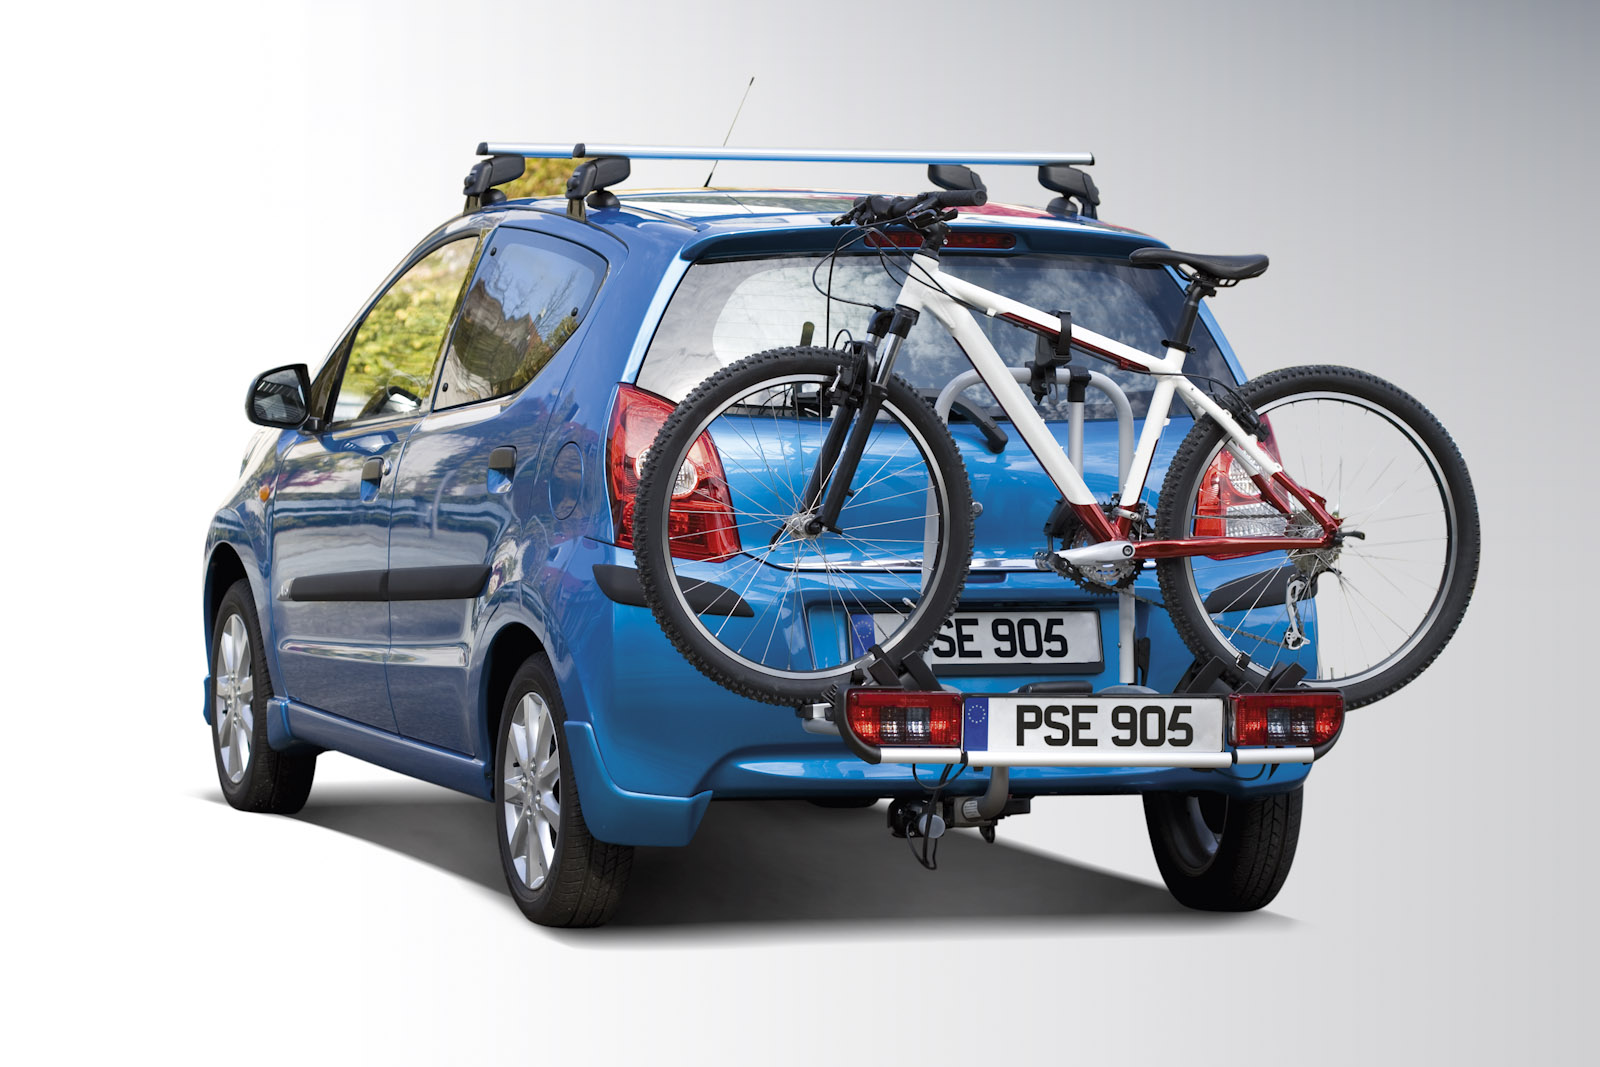 asp car bike to image in any alt high rack resolution racks view click trunk